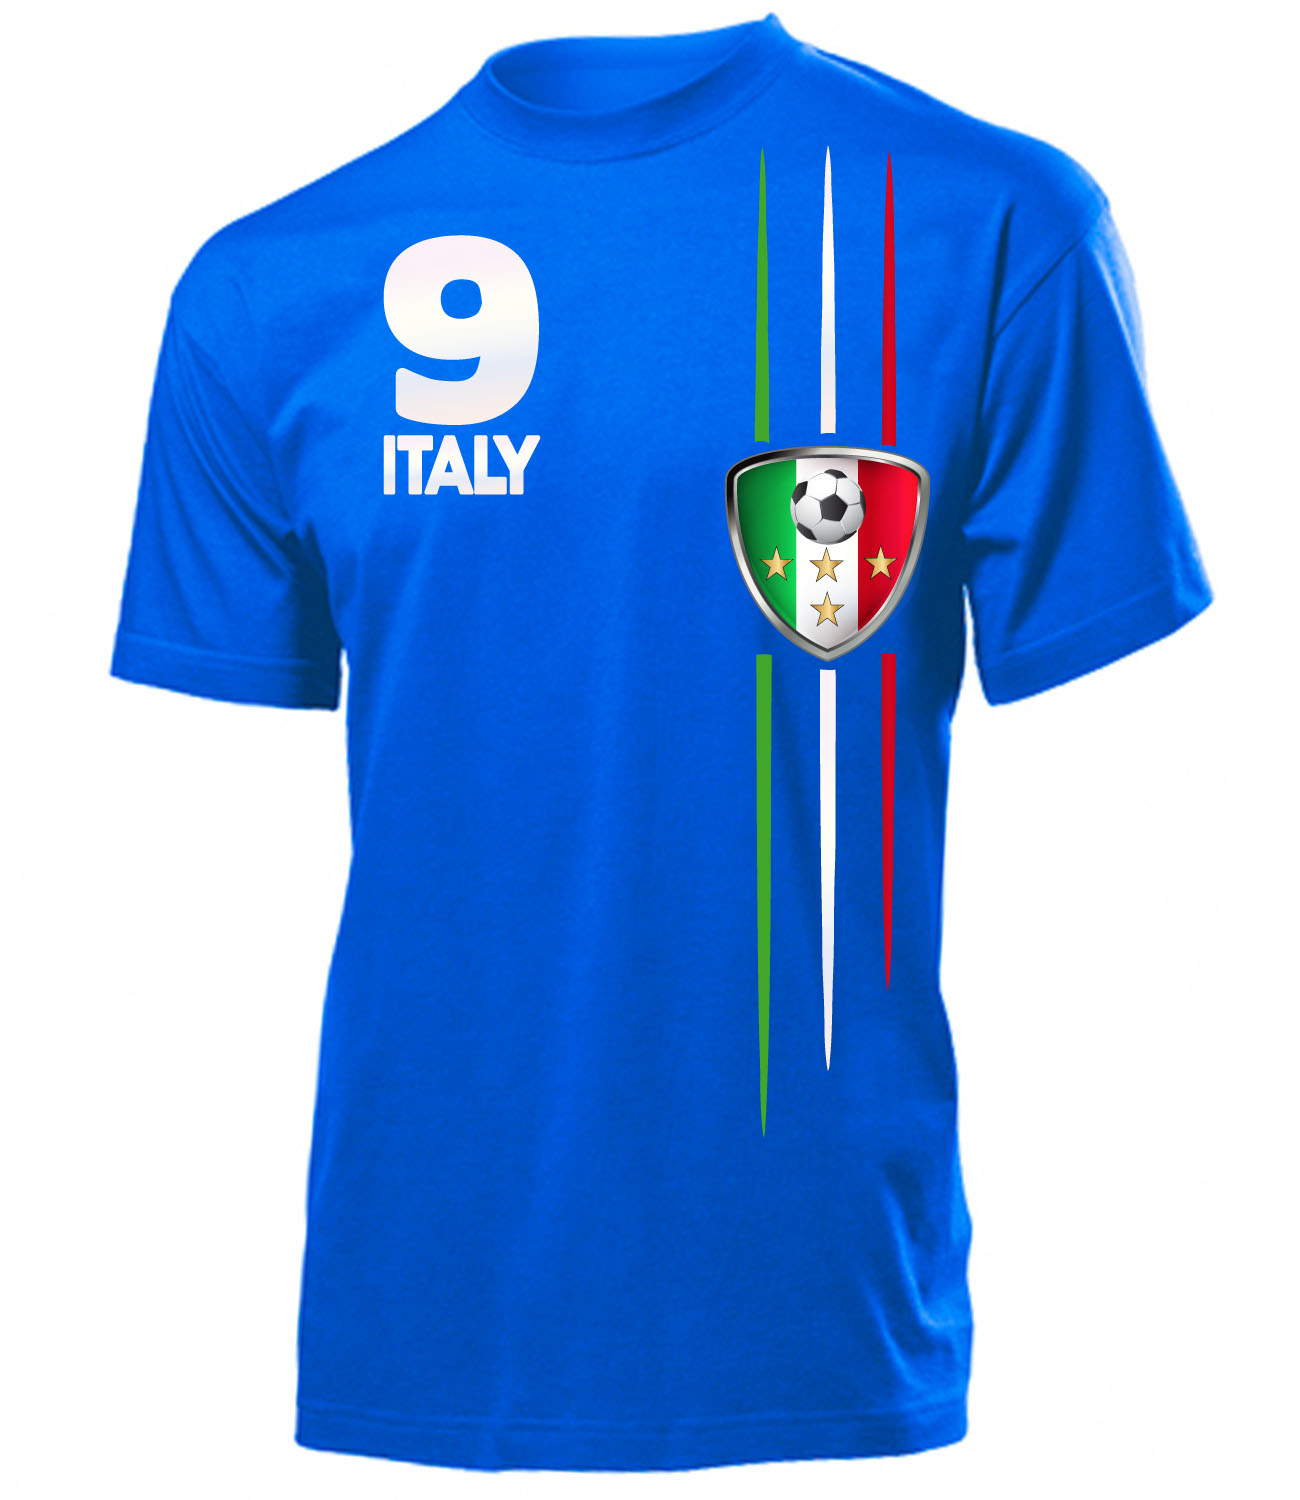 fussball fanartikel wm 2018 italien fanshirt t shirt. Black Bedroom Furniture Sets. Home Design Ideas